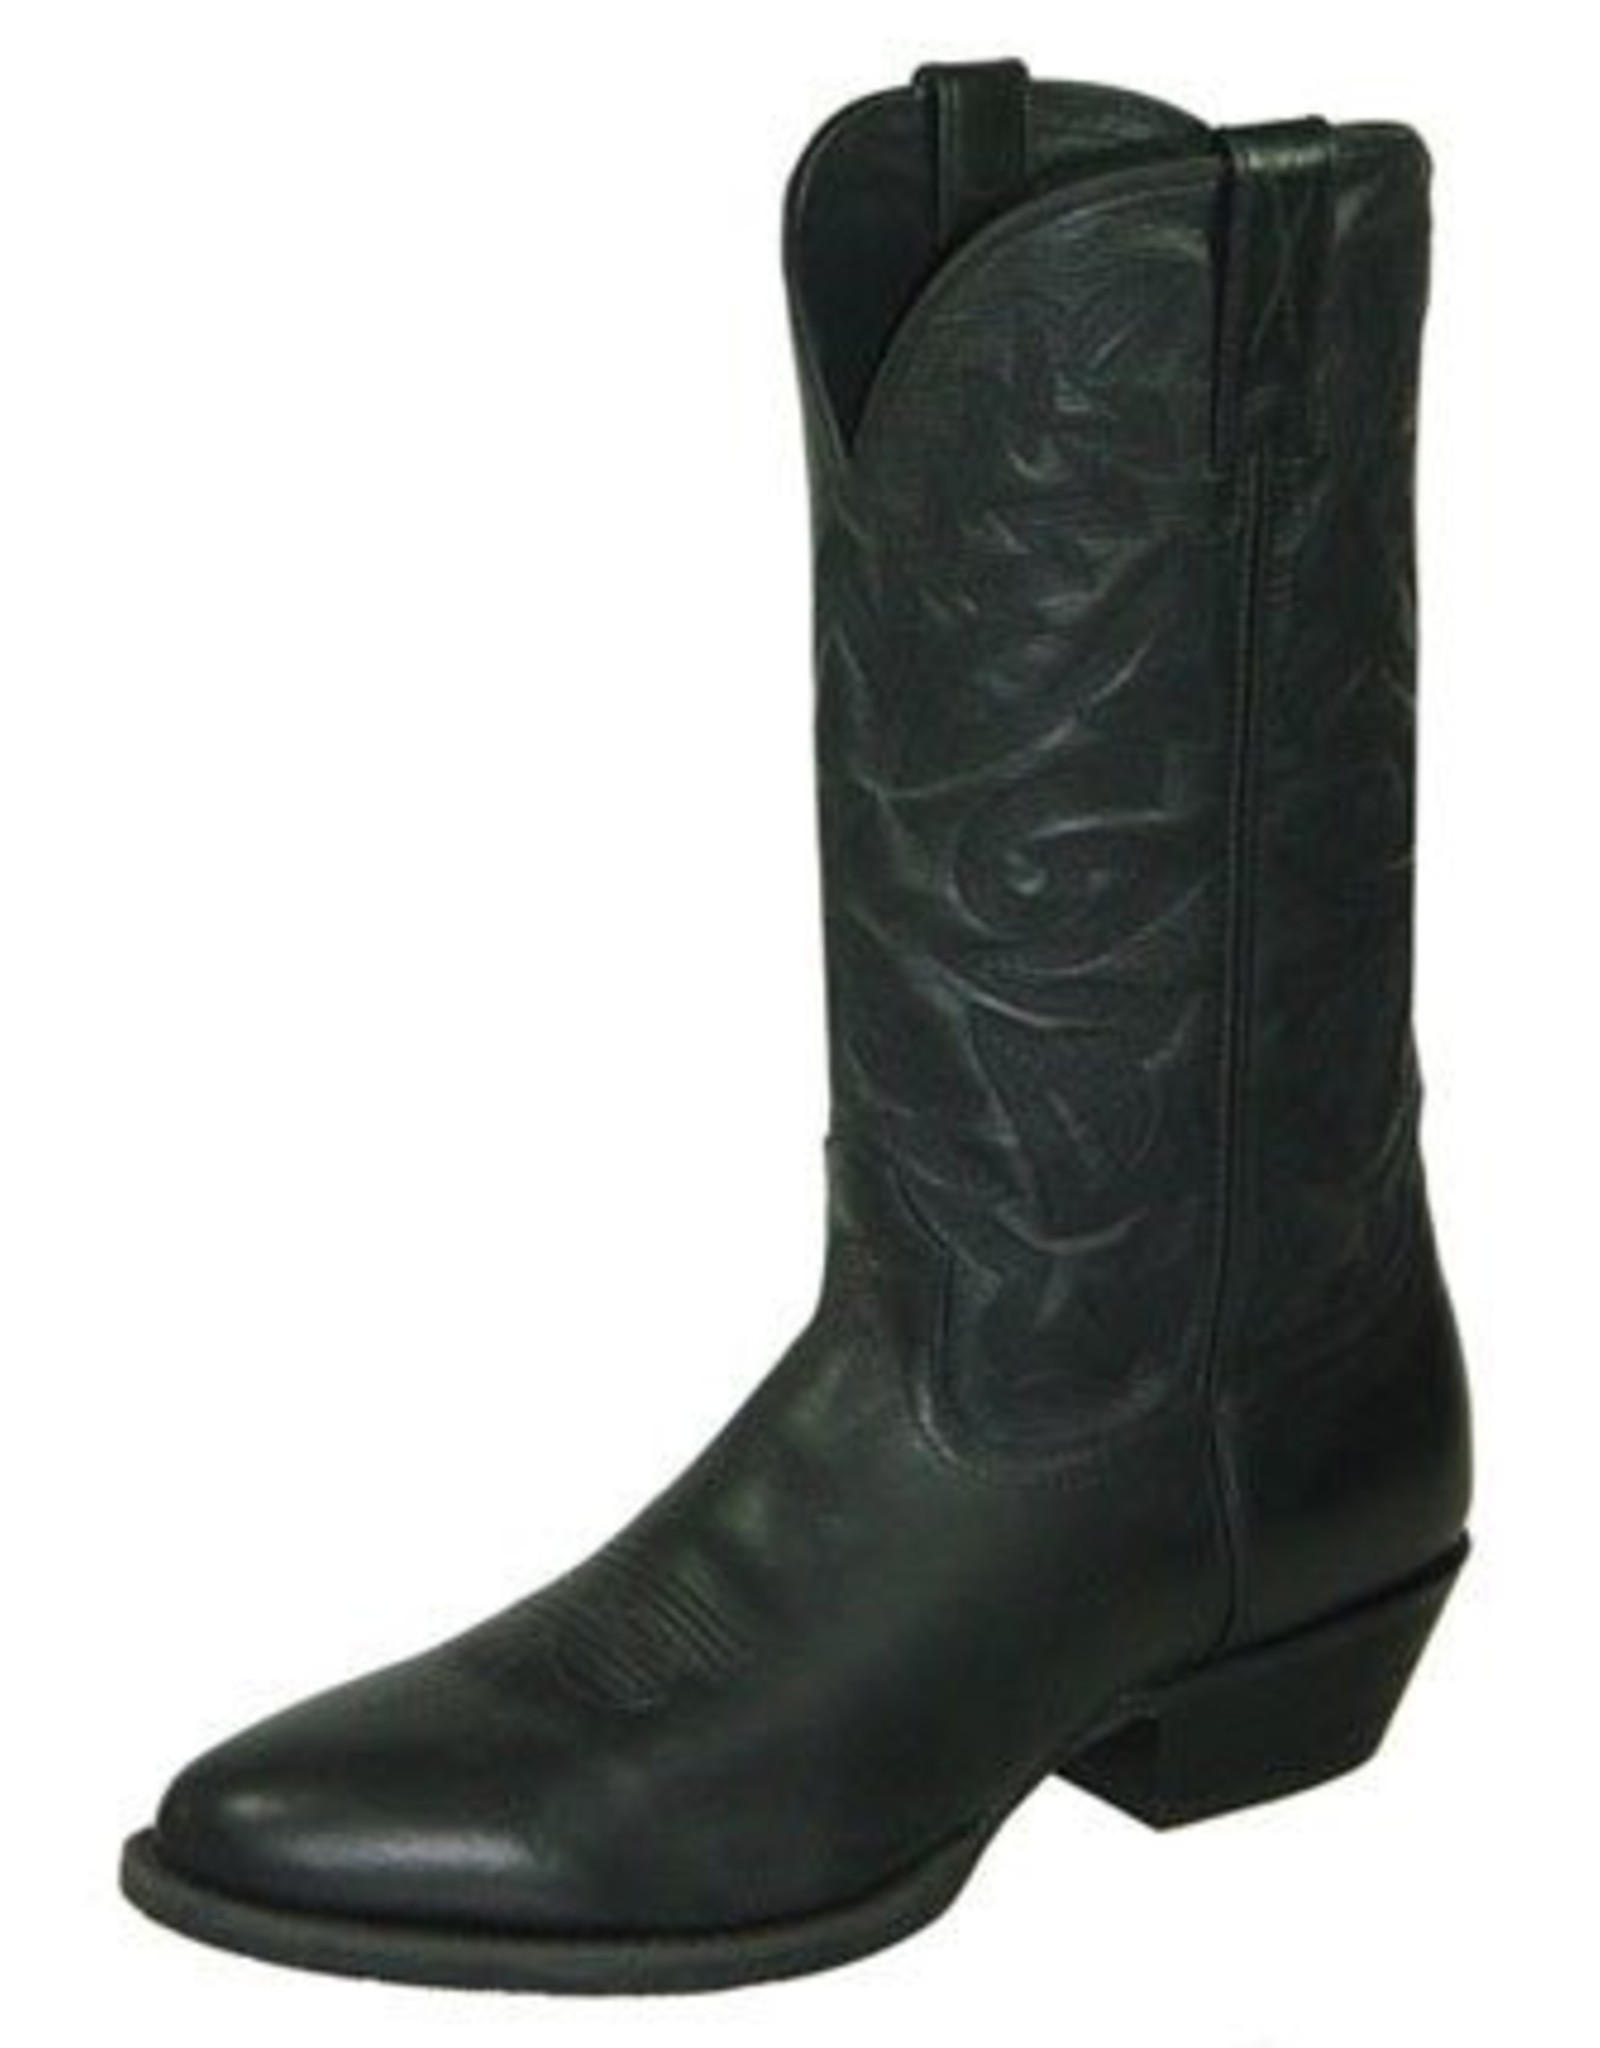 Twisted X Twisted X Men's Black Western Boots Size 9